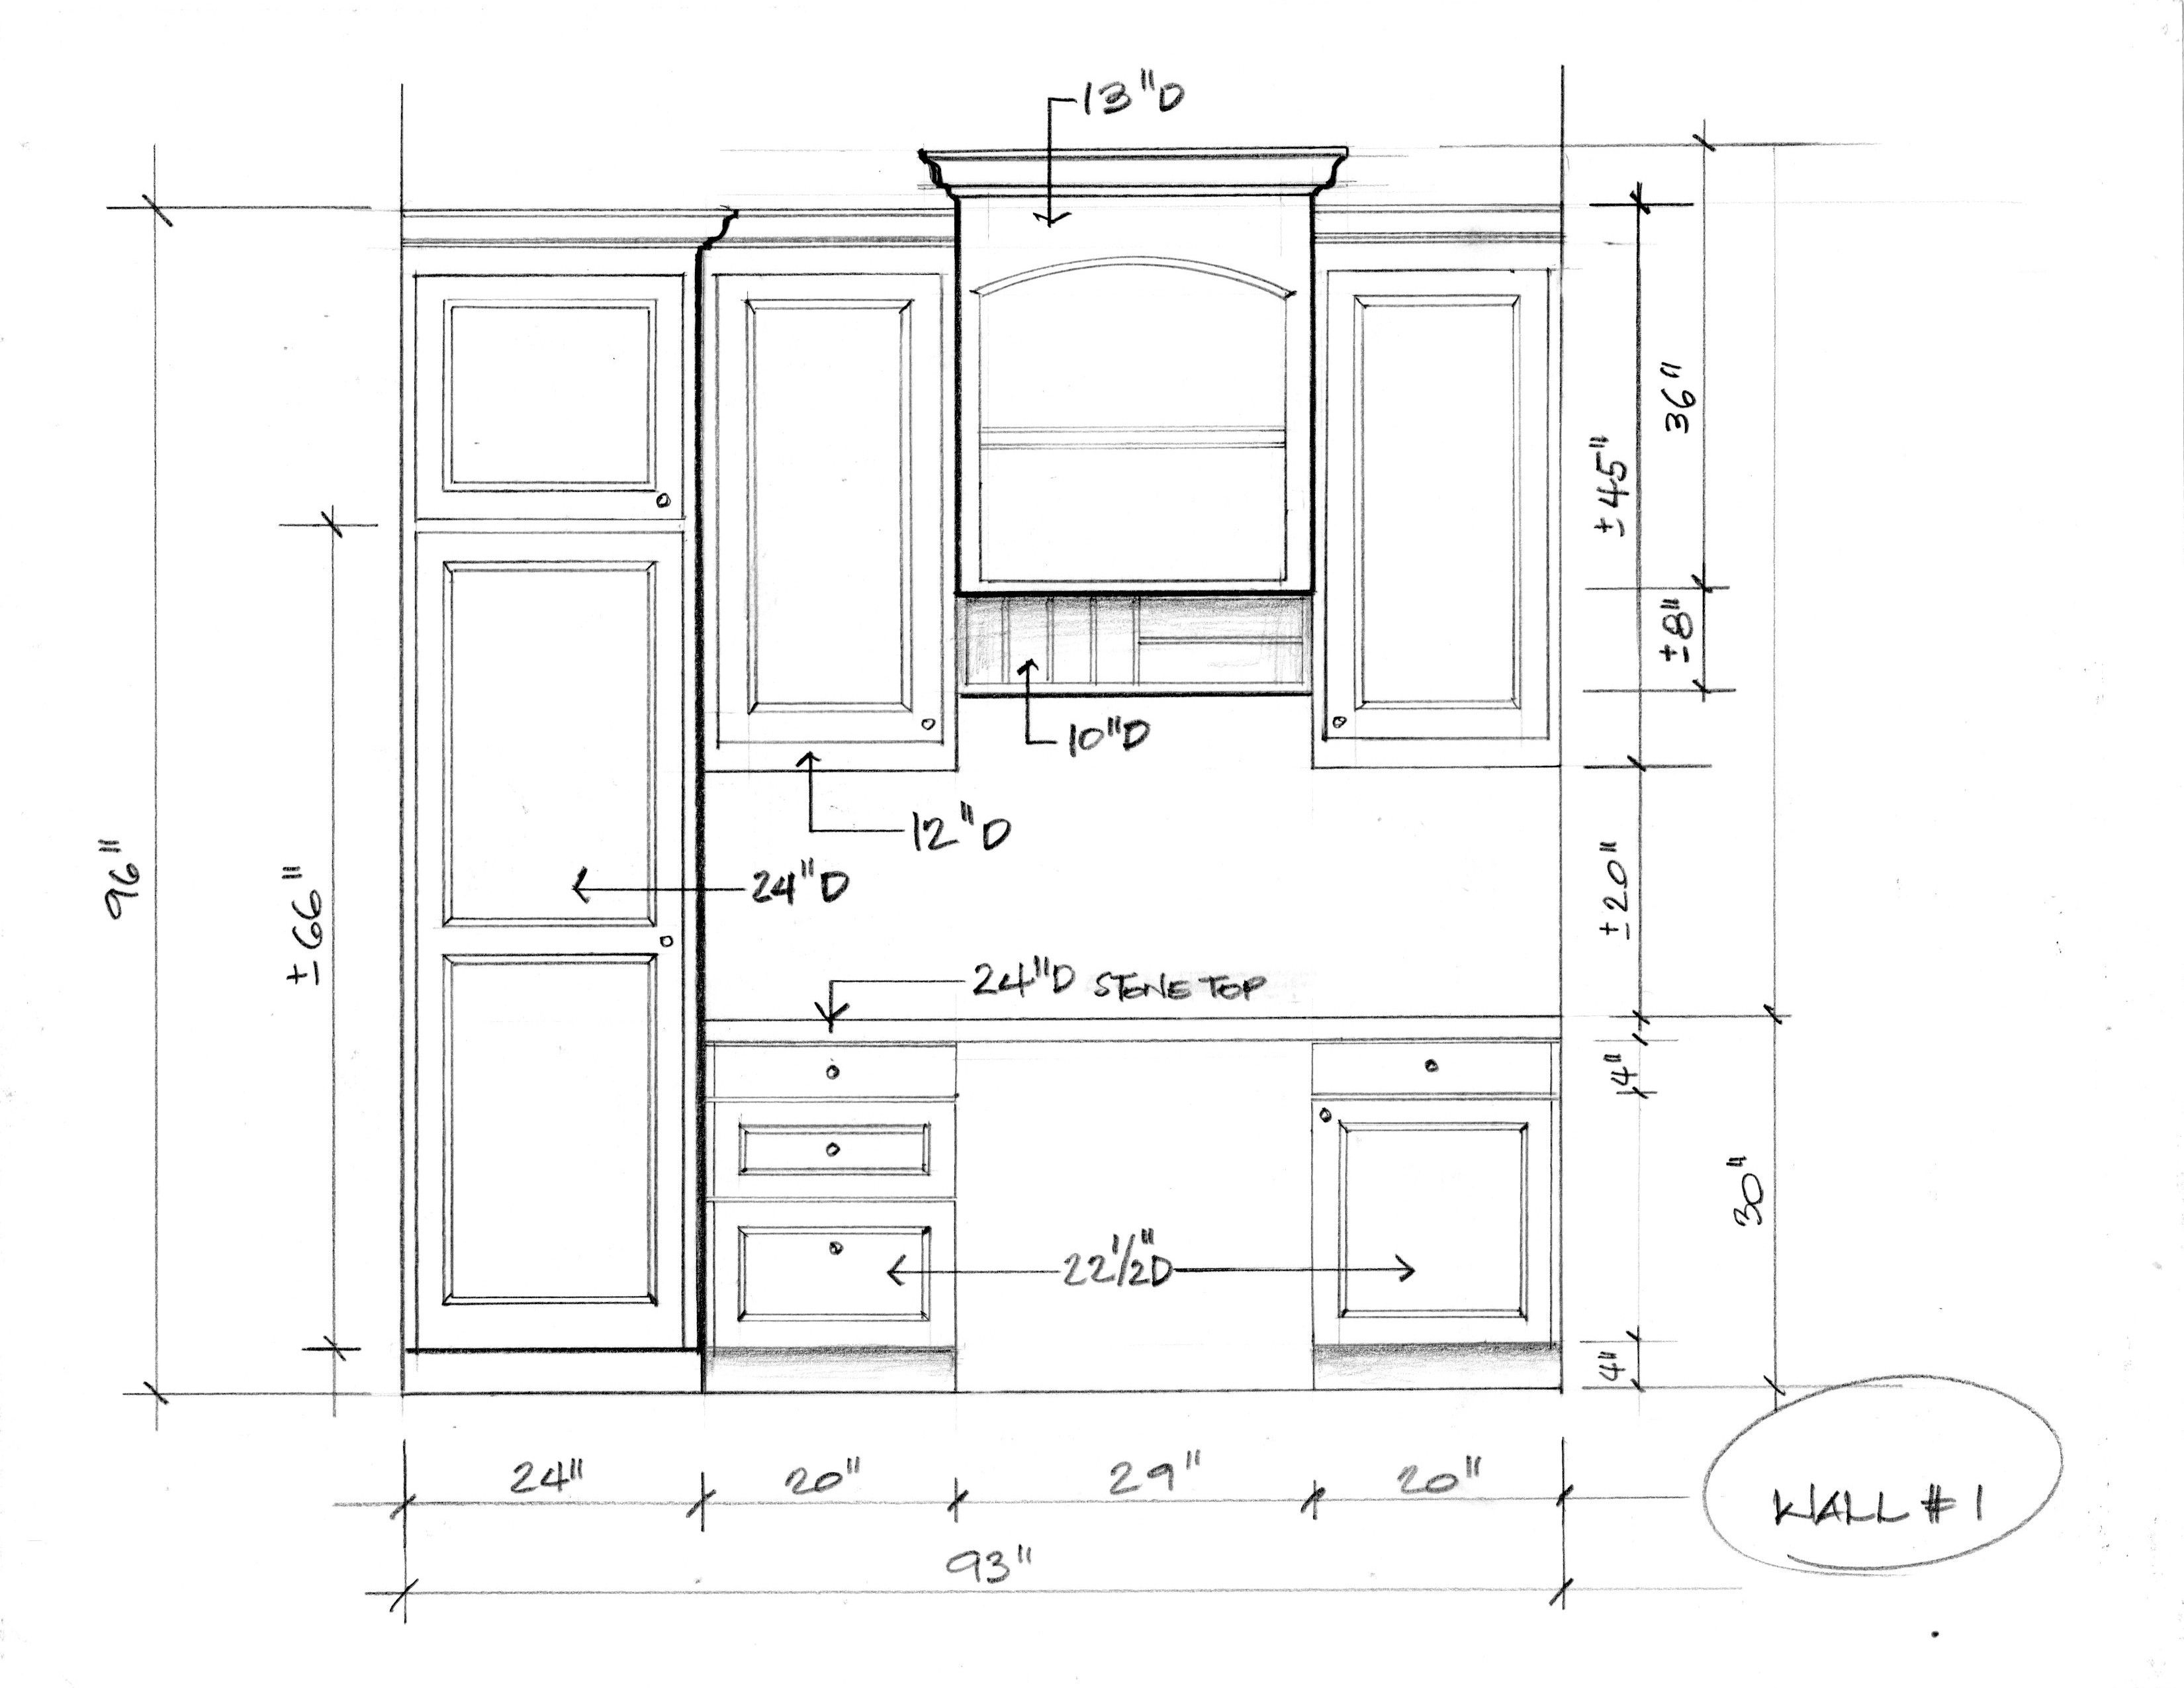 Custom Cabinets And Trim Carpentry Houston Texas Office Interiors Interior Design Classes Built In Cabinets